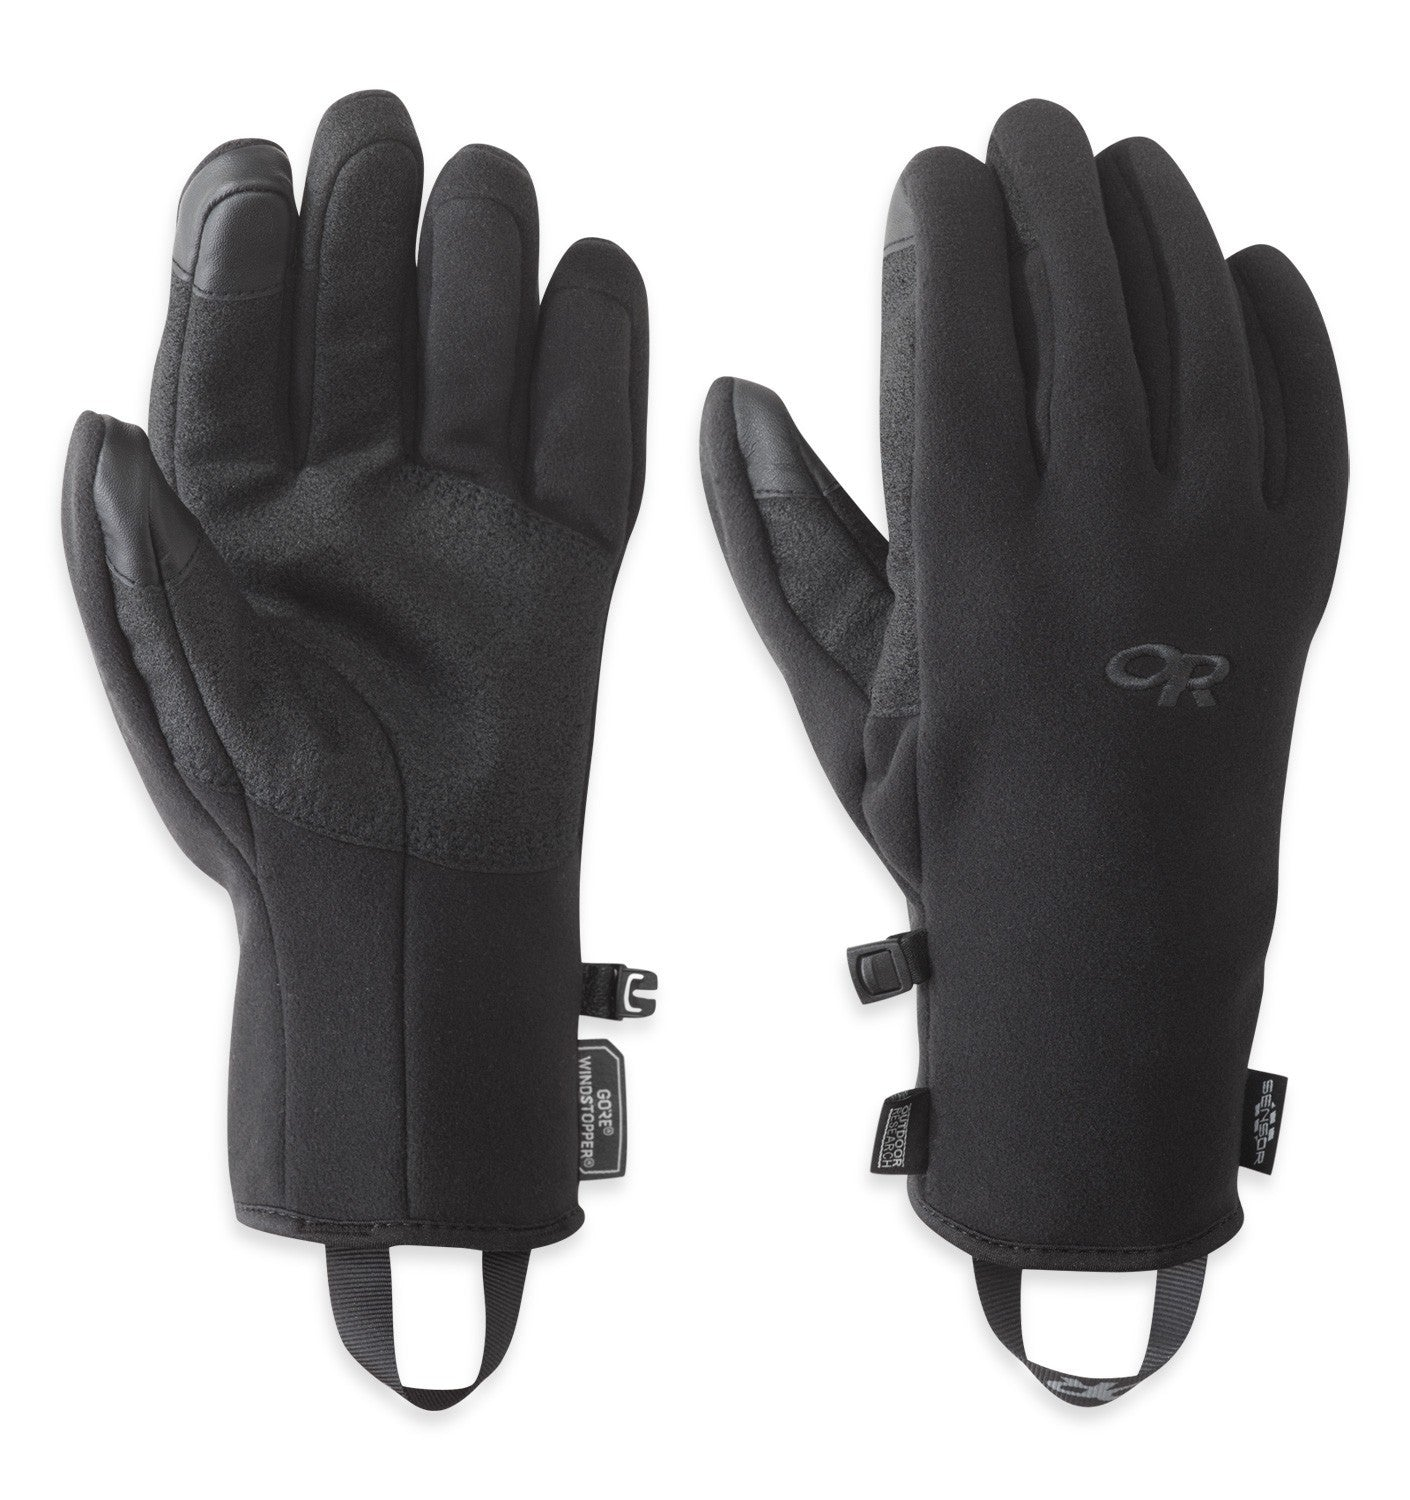 Outdoor Research Gripper Sensor Gloves - Men's